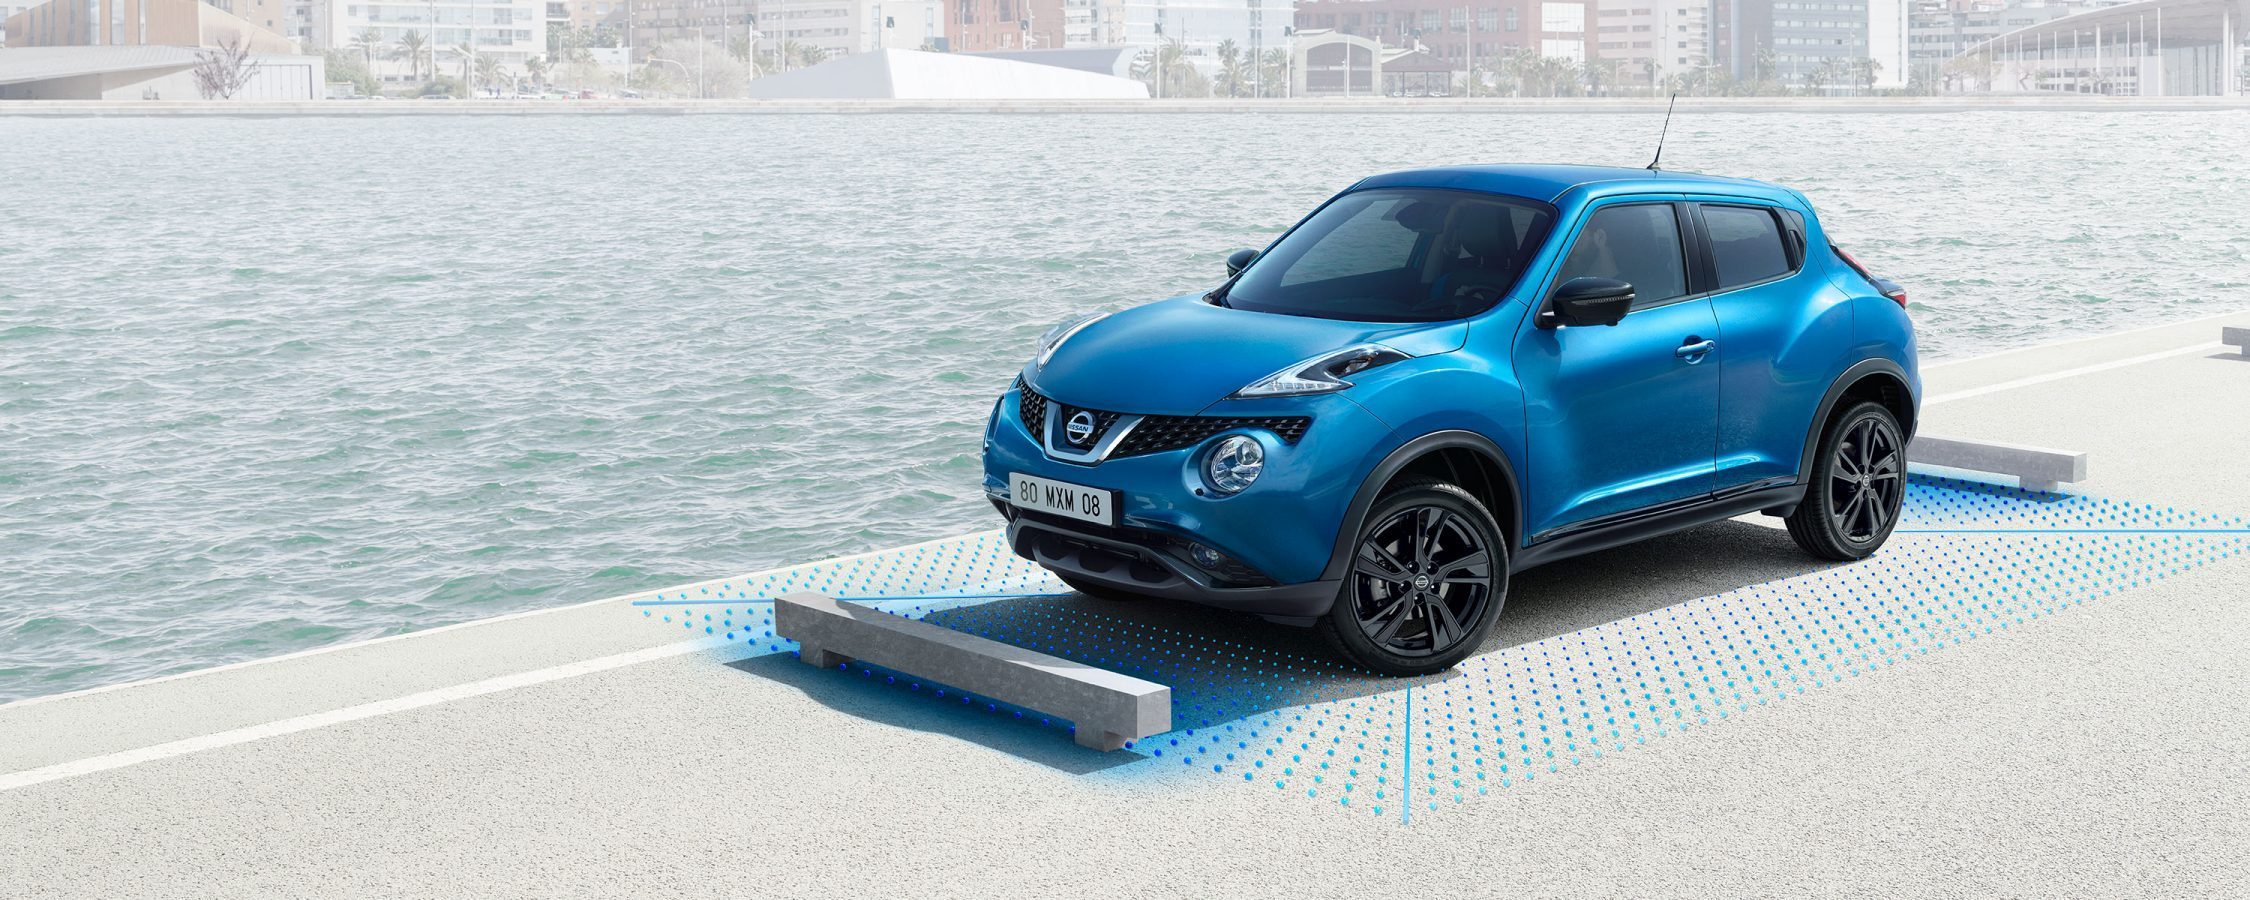 Nissan JUKE 2018 parkeert met intelligent around view monitor